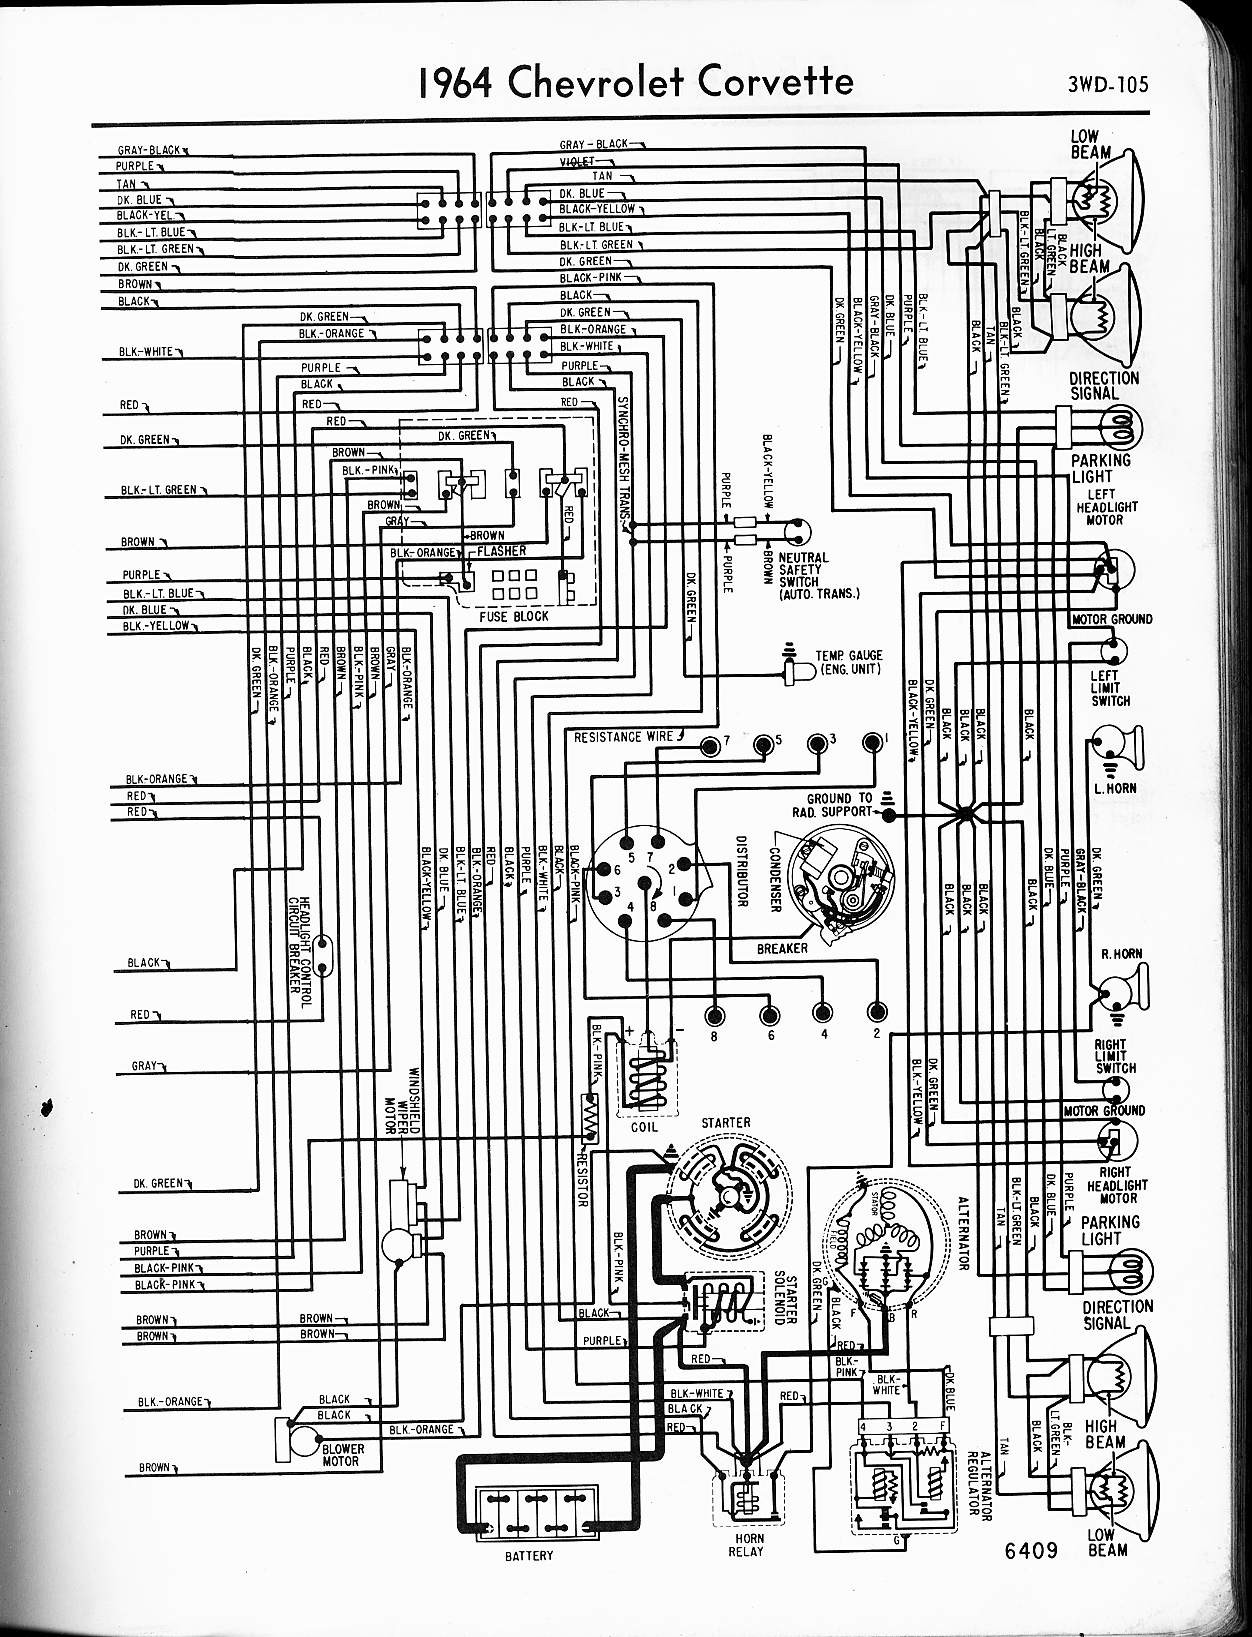 Painless 20101 Fuse Box Wiring Diagram 72 Cuda Great Design Of 1966 Corvette Ac Auto Electrical Rh Radtour Co Brake Circuit